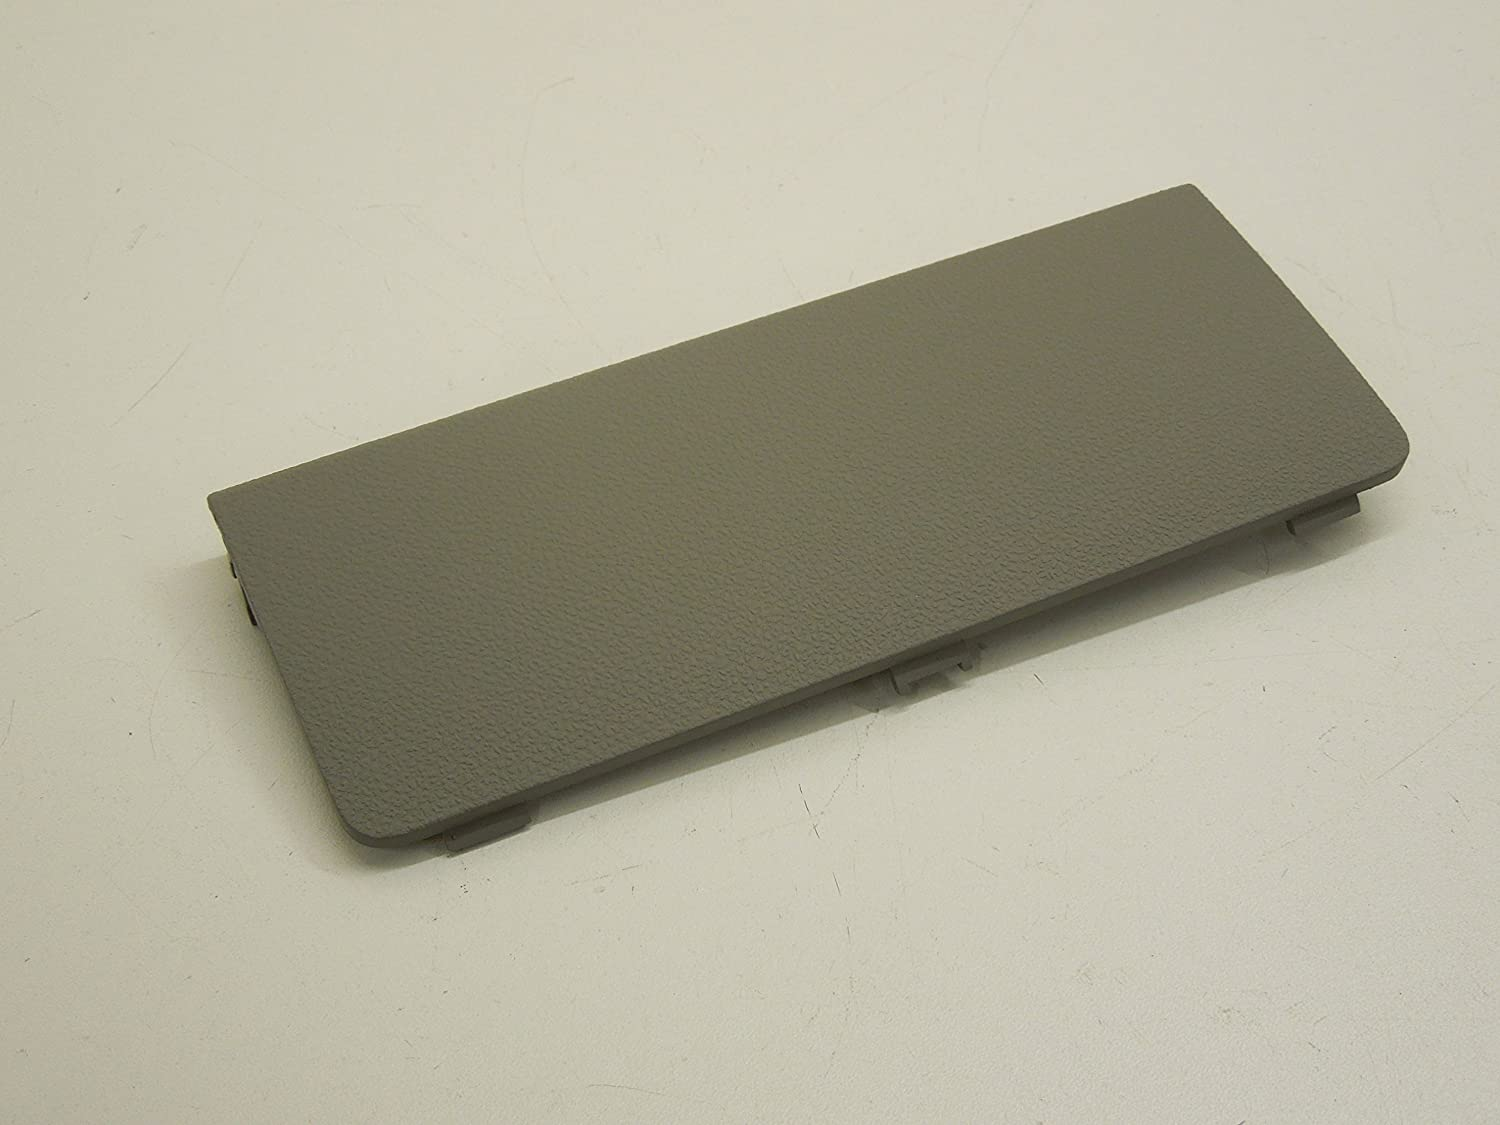 Audi A2 8Z Platinum LIght Grey Fuse Box Cover Lid Access Panel New:  Amazon.co.uk: Car & Motorbike